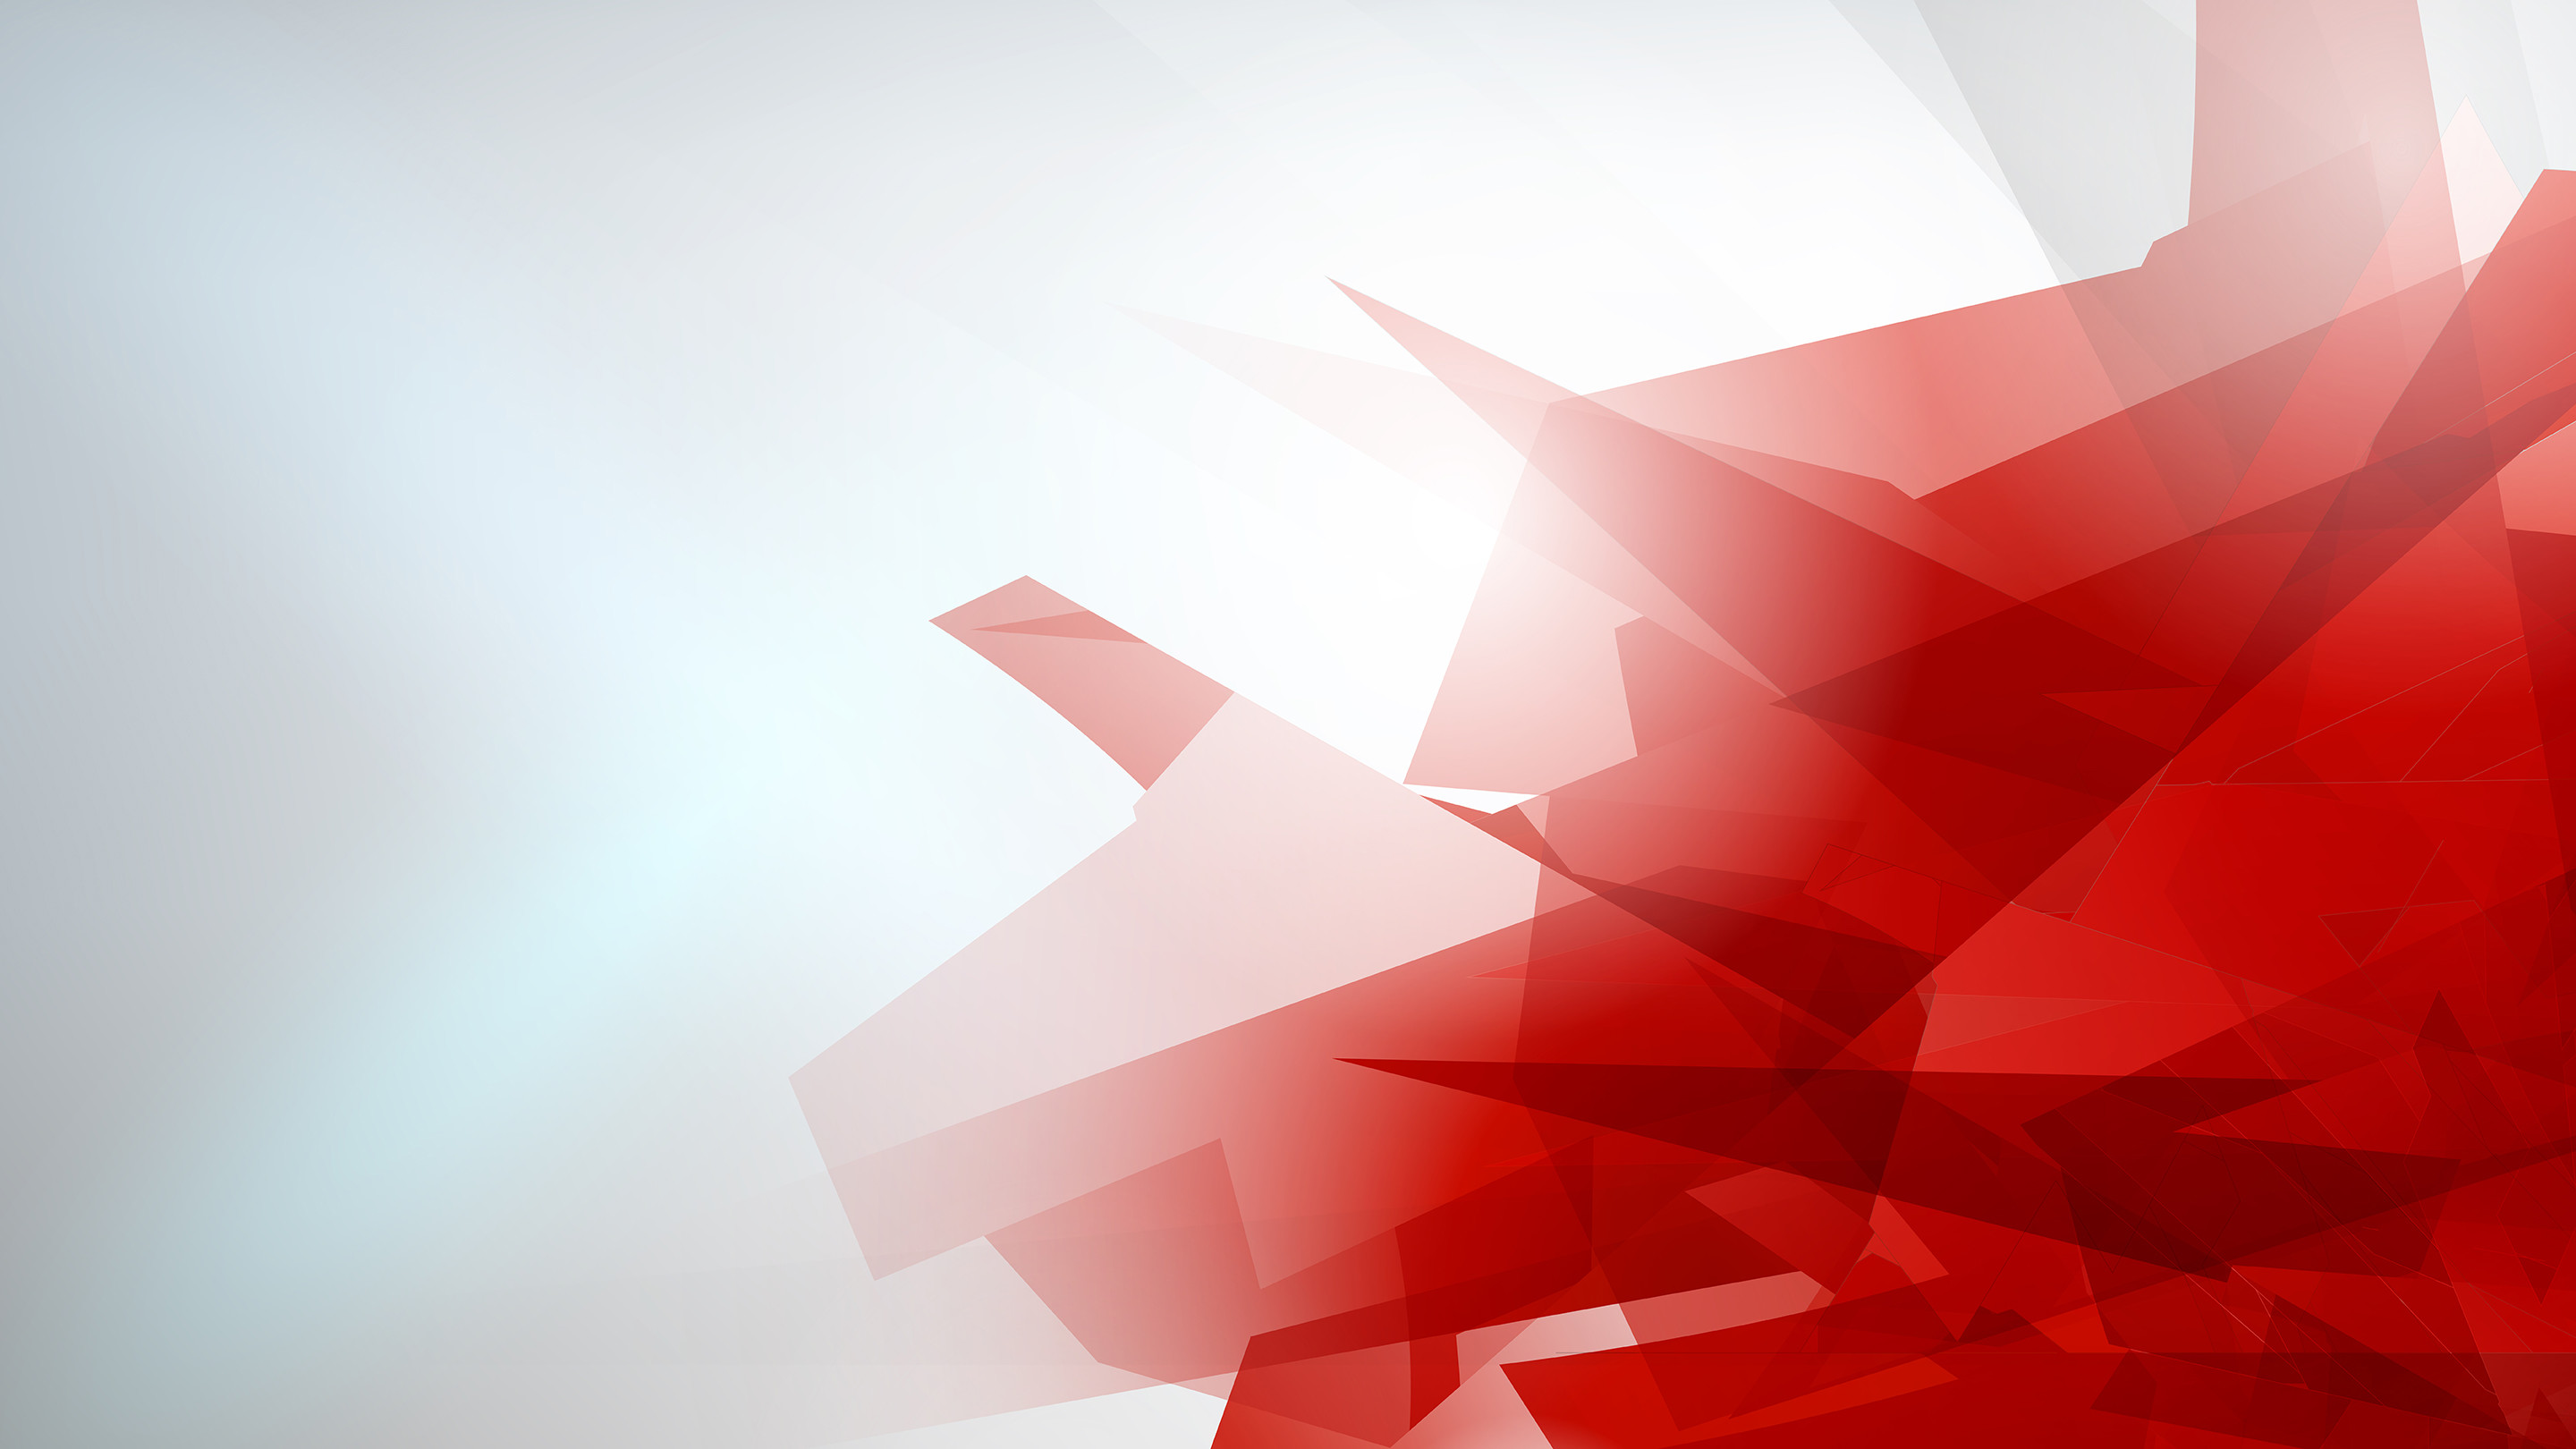 Res: 2880x1620, Lenovo wallpapers that come with Windows 8.1